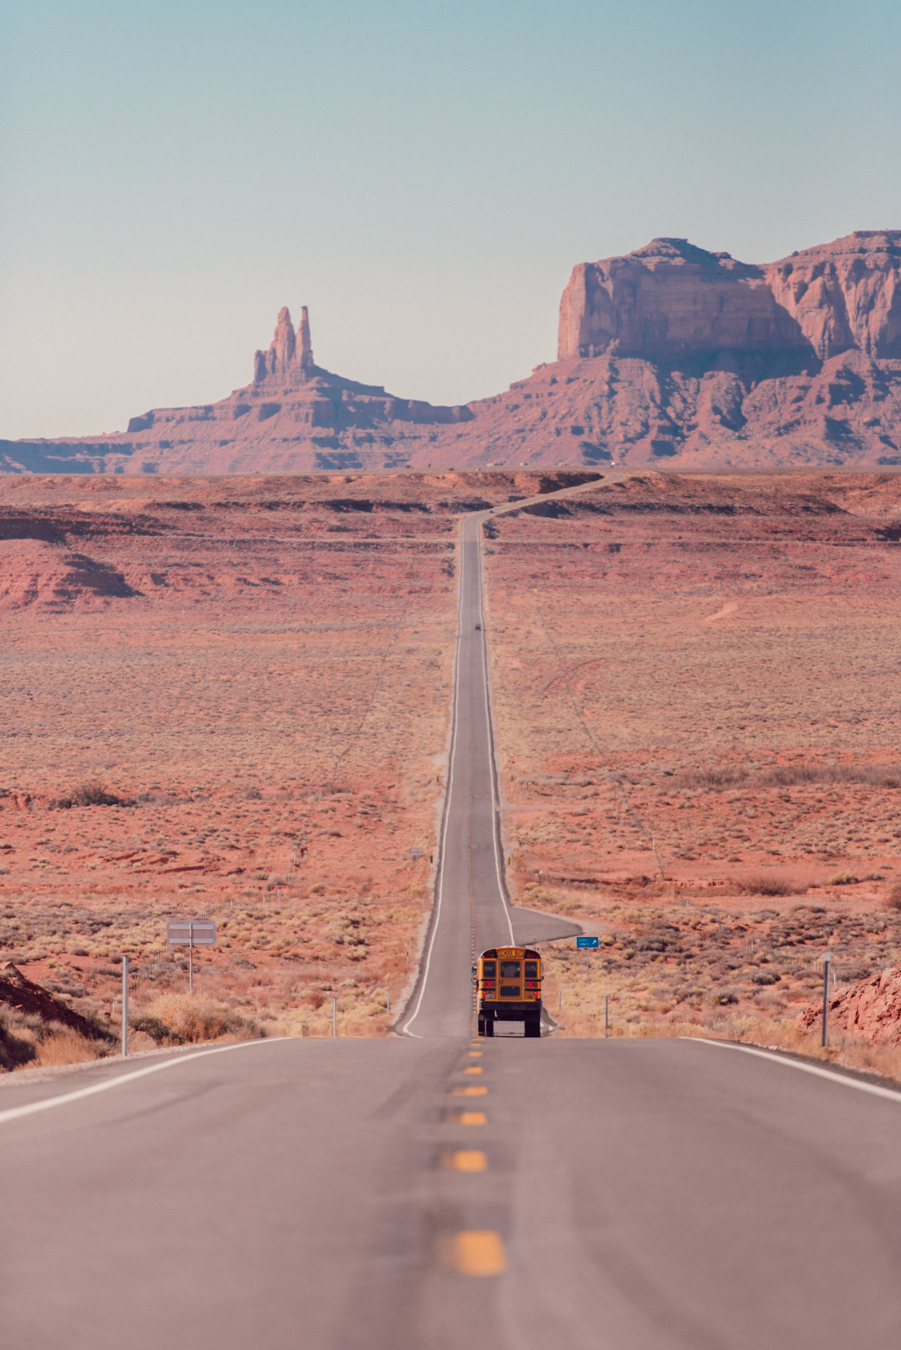 Blog-Mode-And-the-City-Lifestyle-voyage-roadtrip-USA-cote-ouest-grand-canyon-monument-valley-22